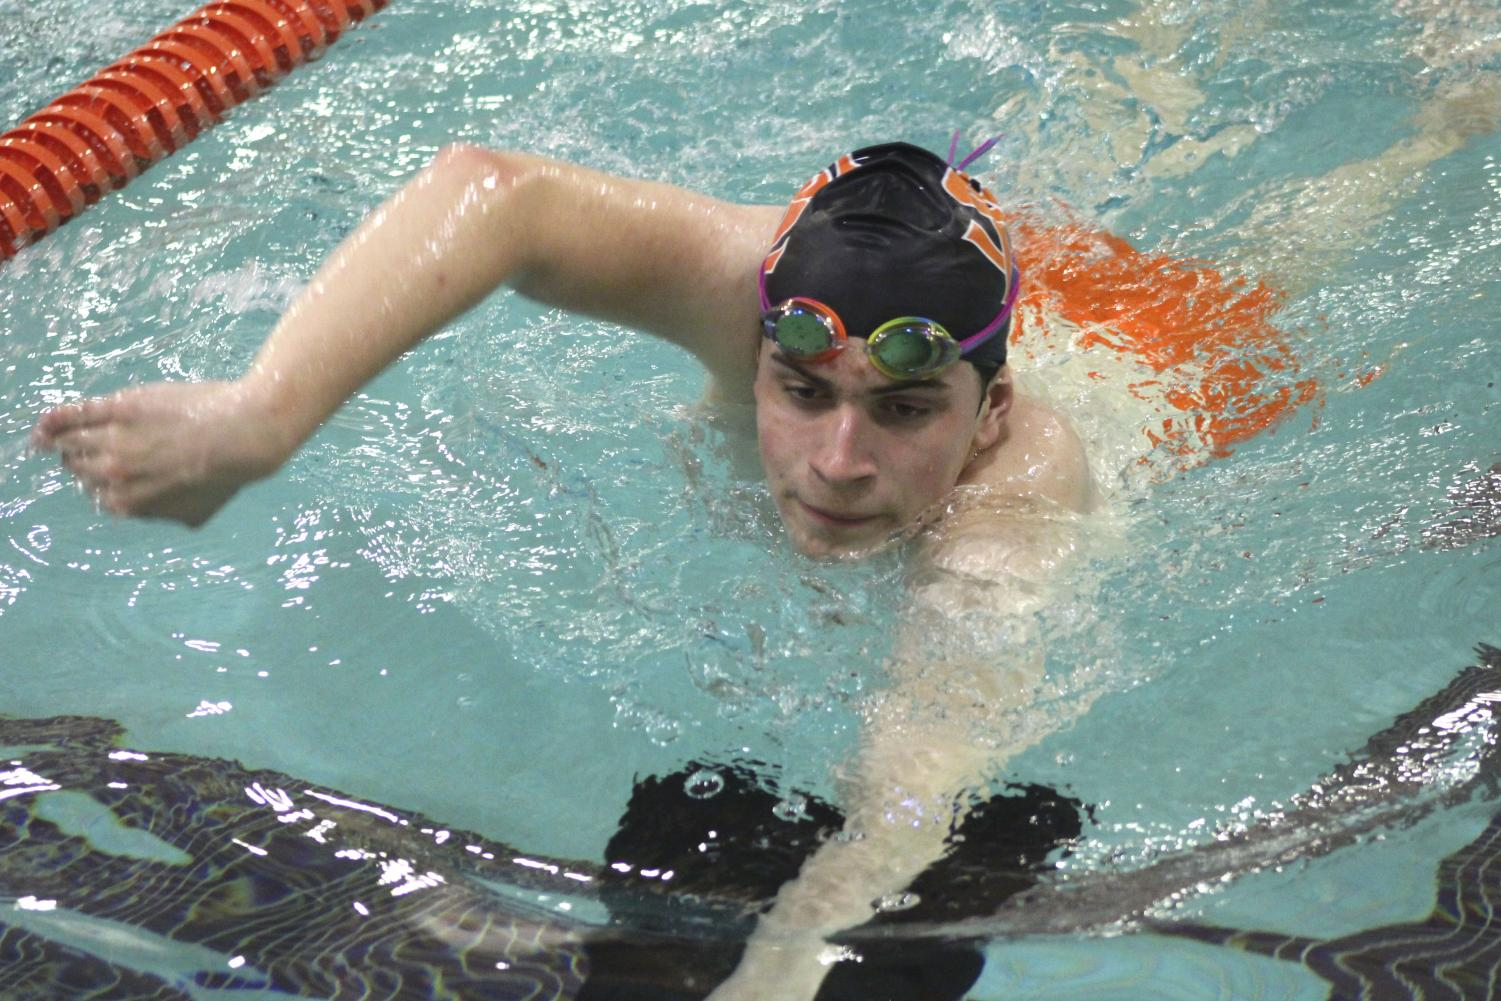 Senior Max Bechtold, practices kicking for the Chaska meet by using a kick board. He swam in the Chaska meet Dec. 13.